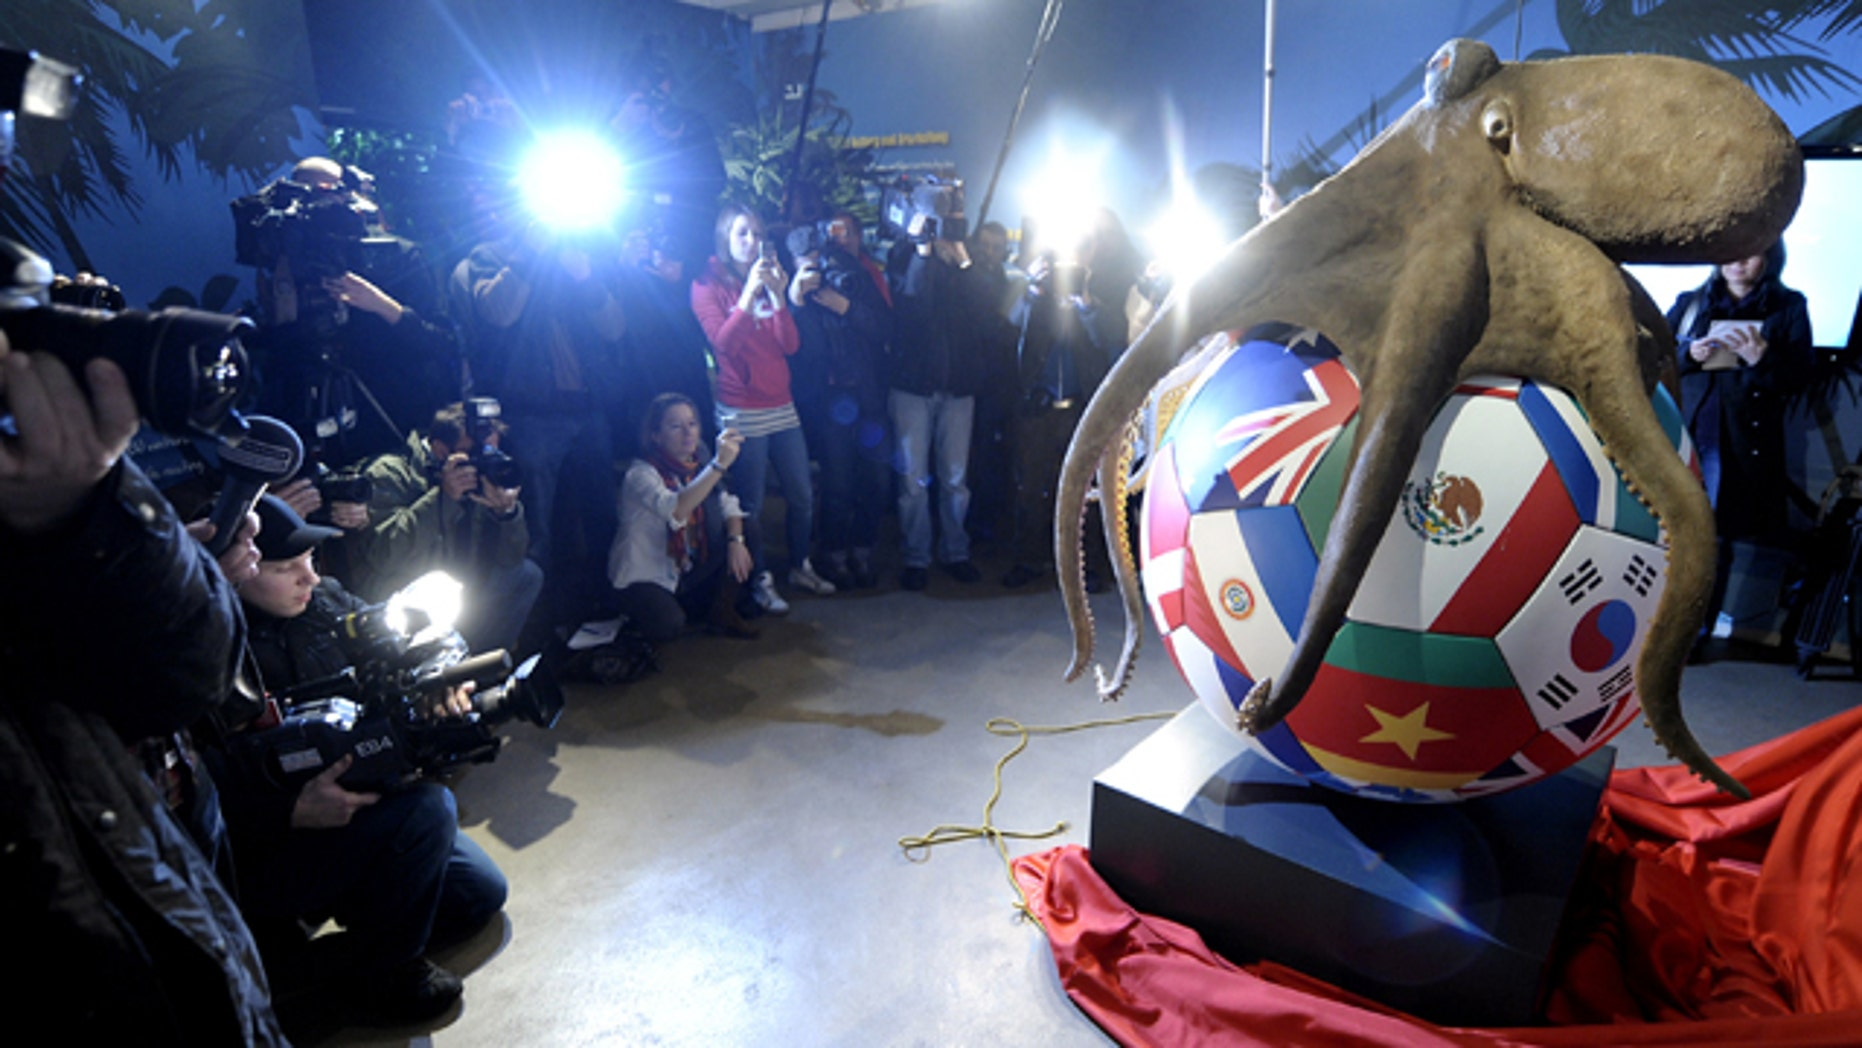 The two-meter-tall monument has been revealed for Paul the Octopus, the tentacled tipster who fascinated football fans by correctly predicting results at last year's World Cup.